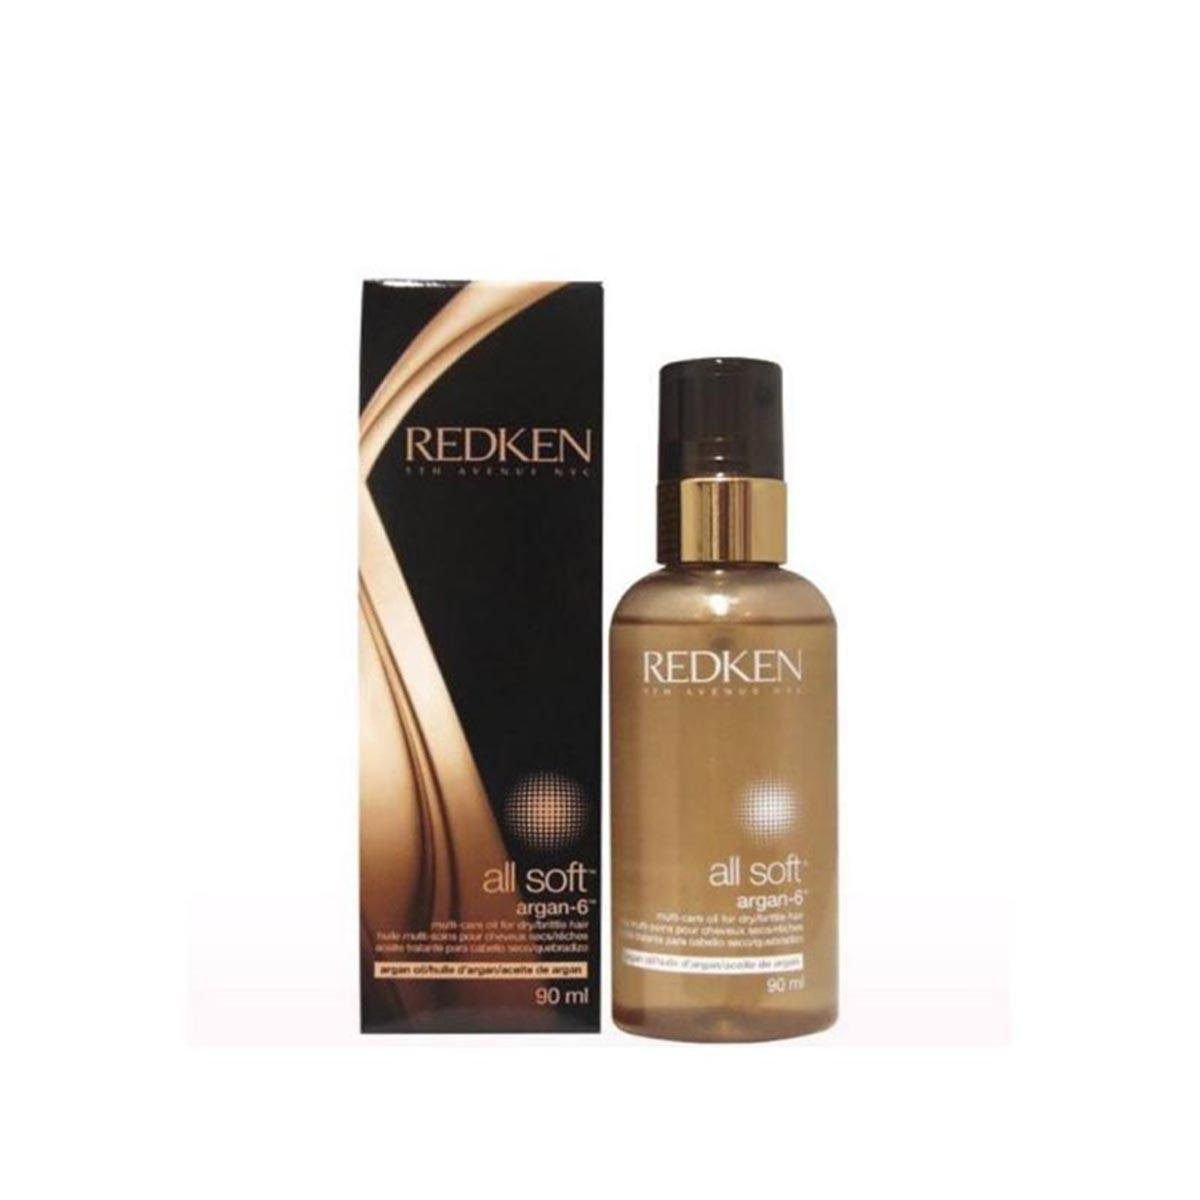 Redken All Soft Argan Oil 90 ml